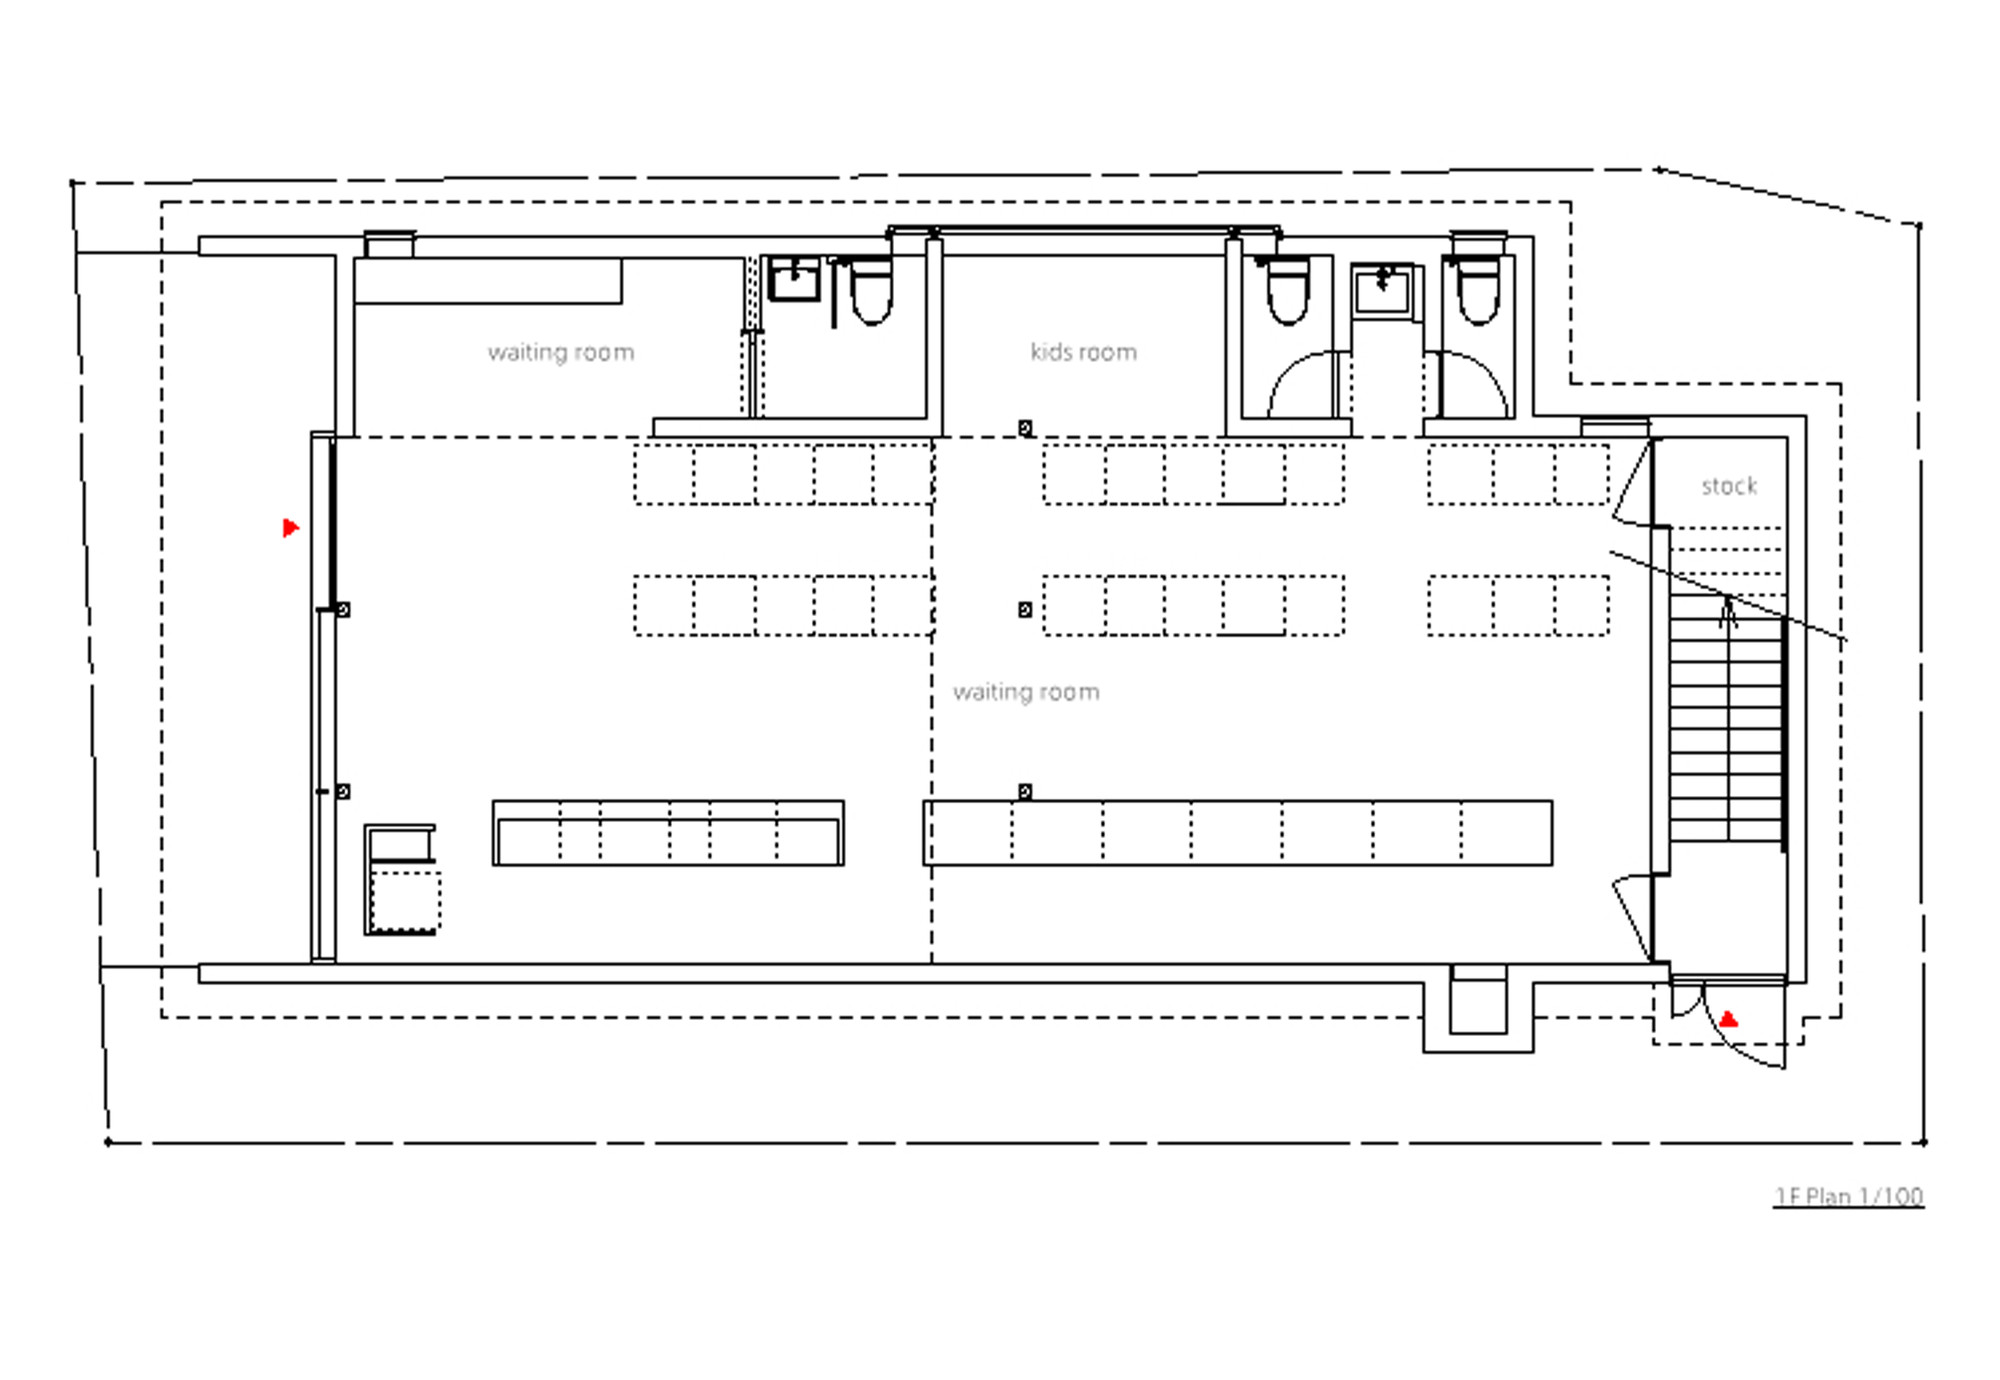 Pharmacy design floor plans gurus floor for Pharmacy design floor plans